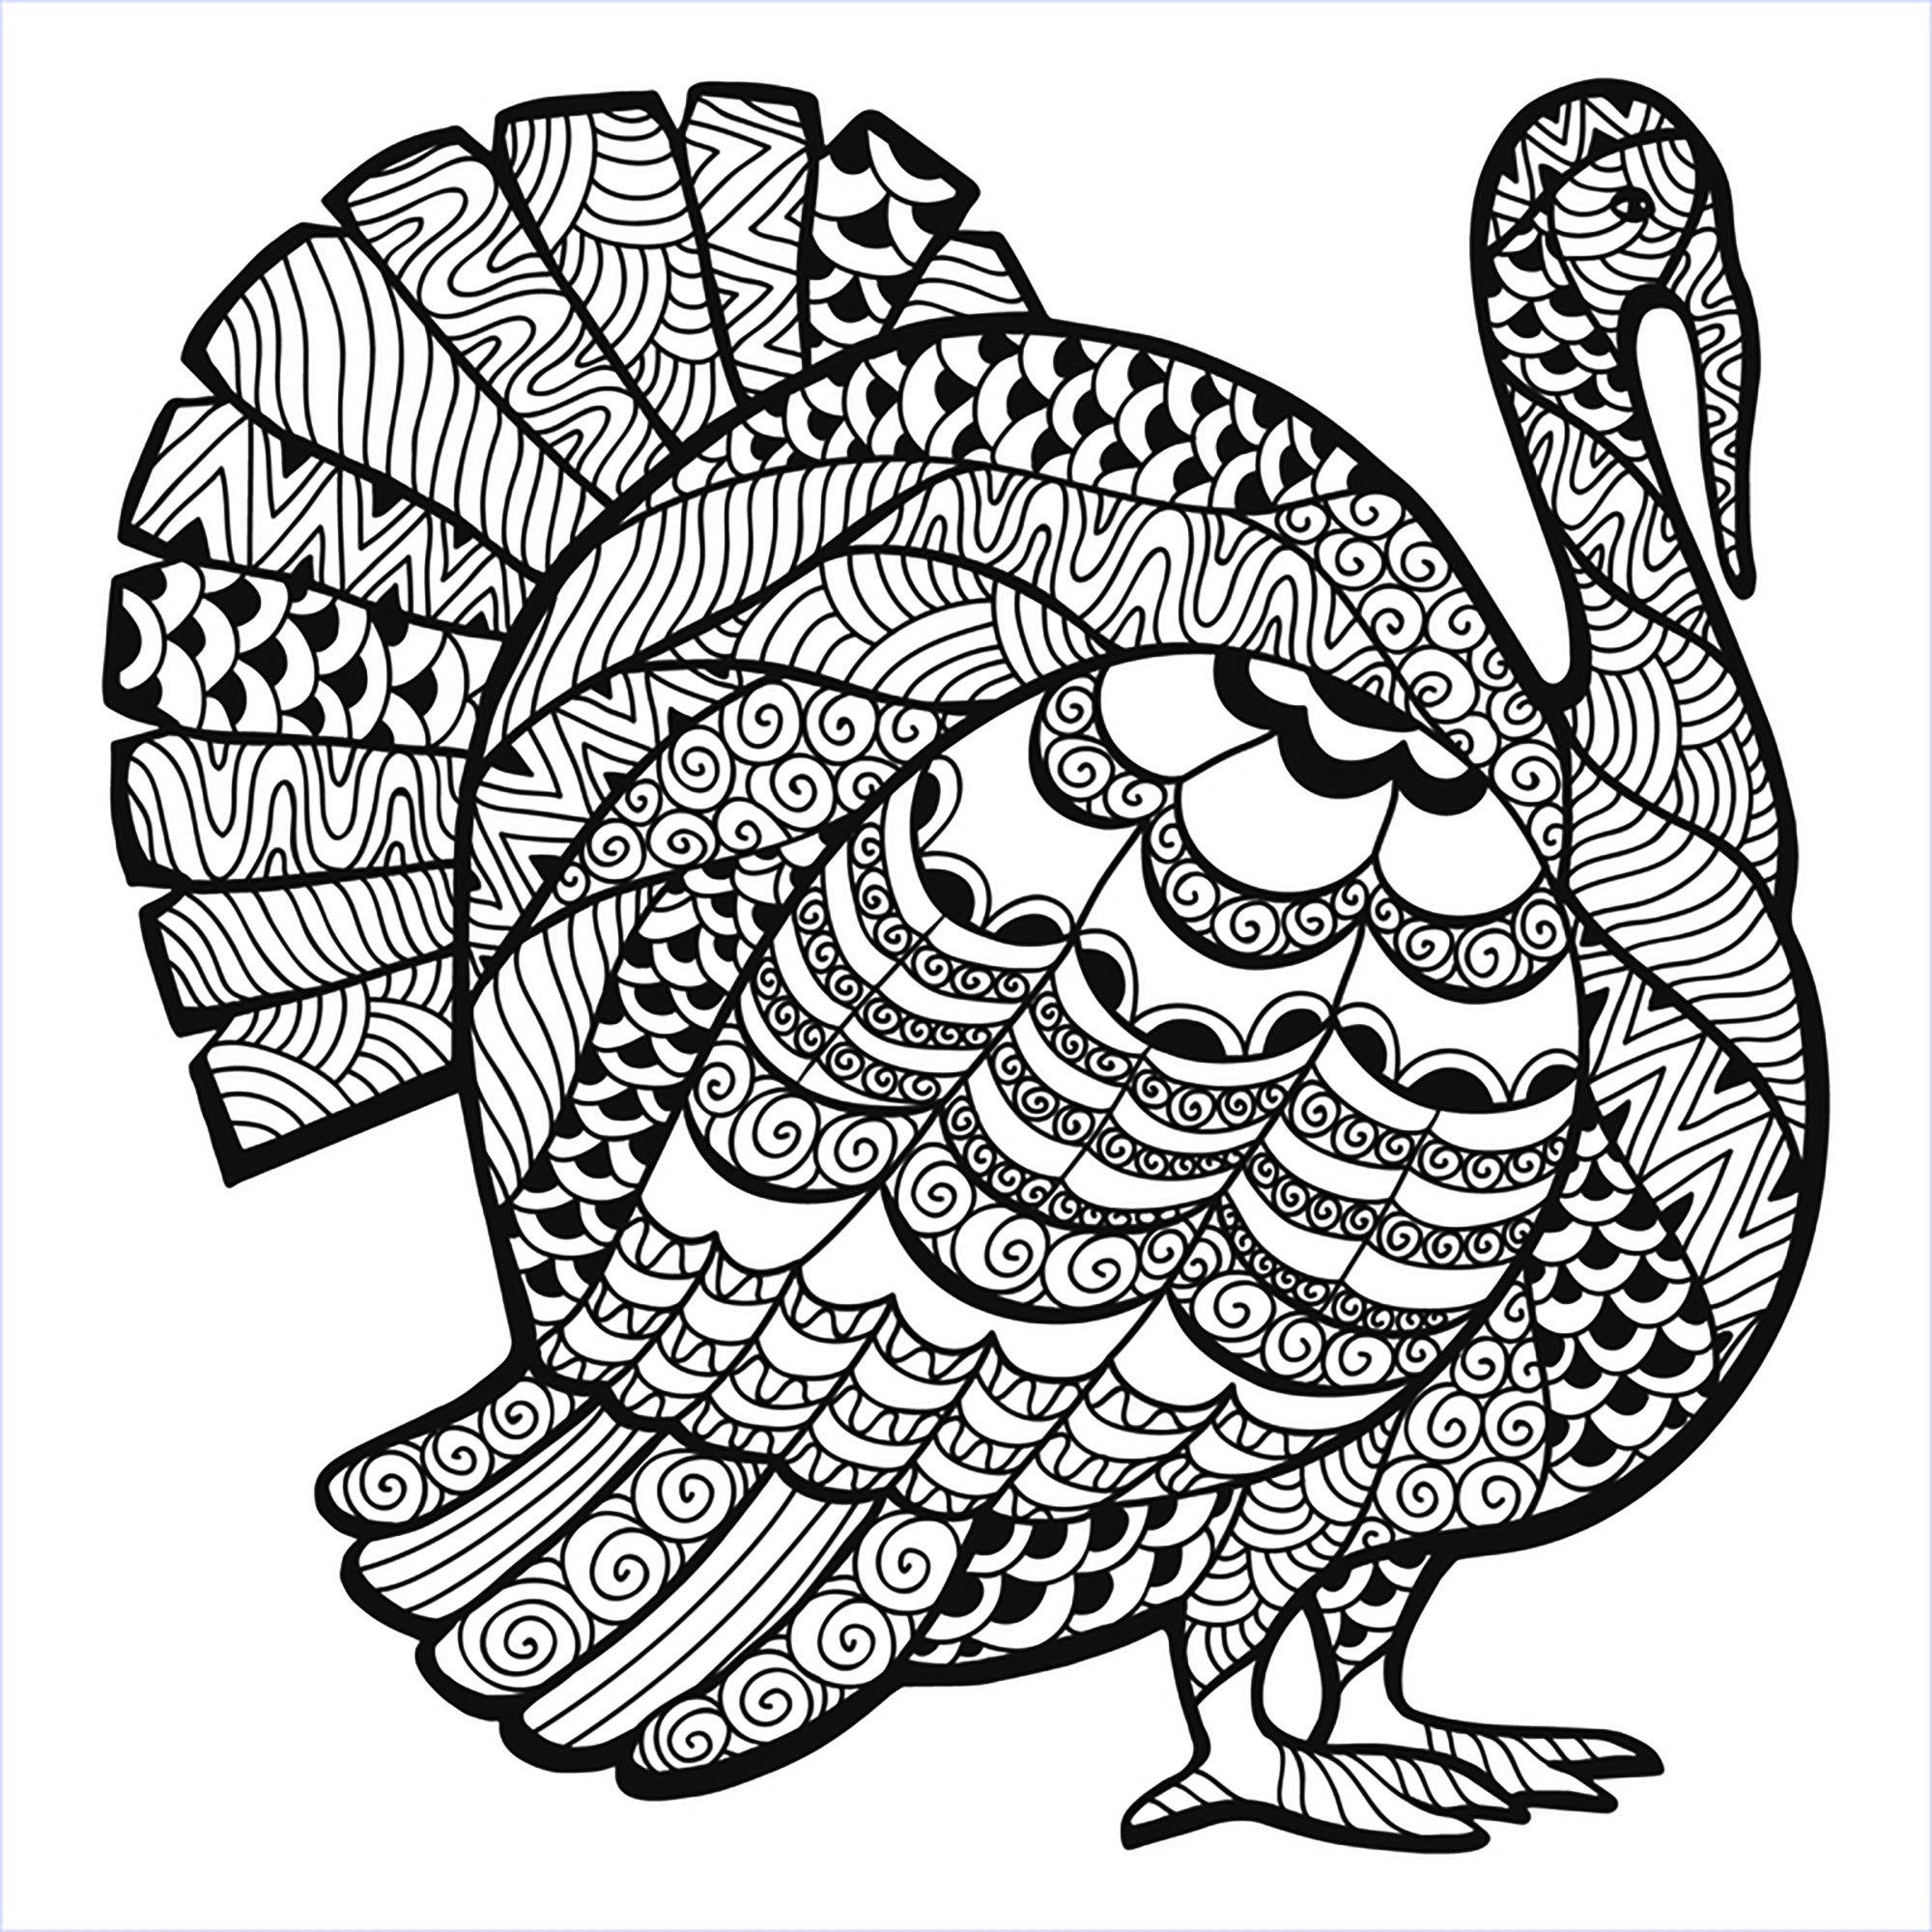 thanksgiving turkey coloring pages Turkey Zentangle Coloring sheet   Thanksgiving Adult Coloring Pages thanksgiving turkey coloring pages